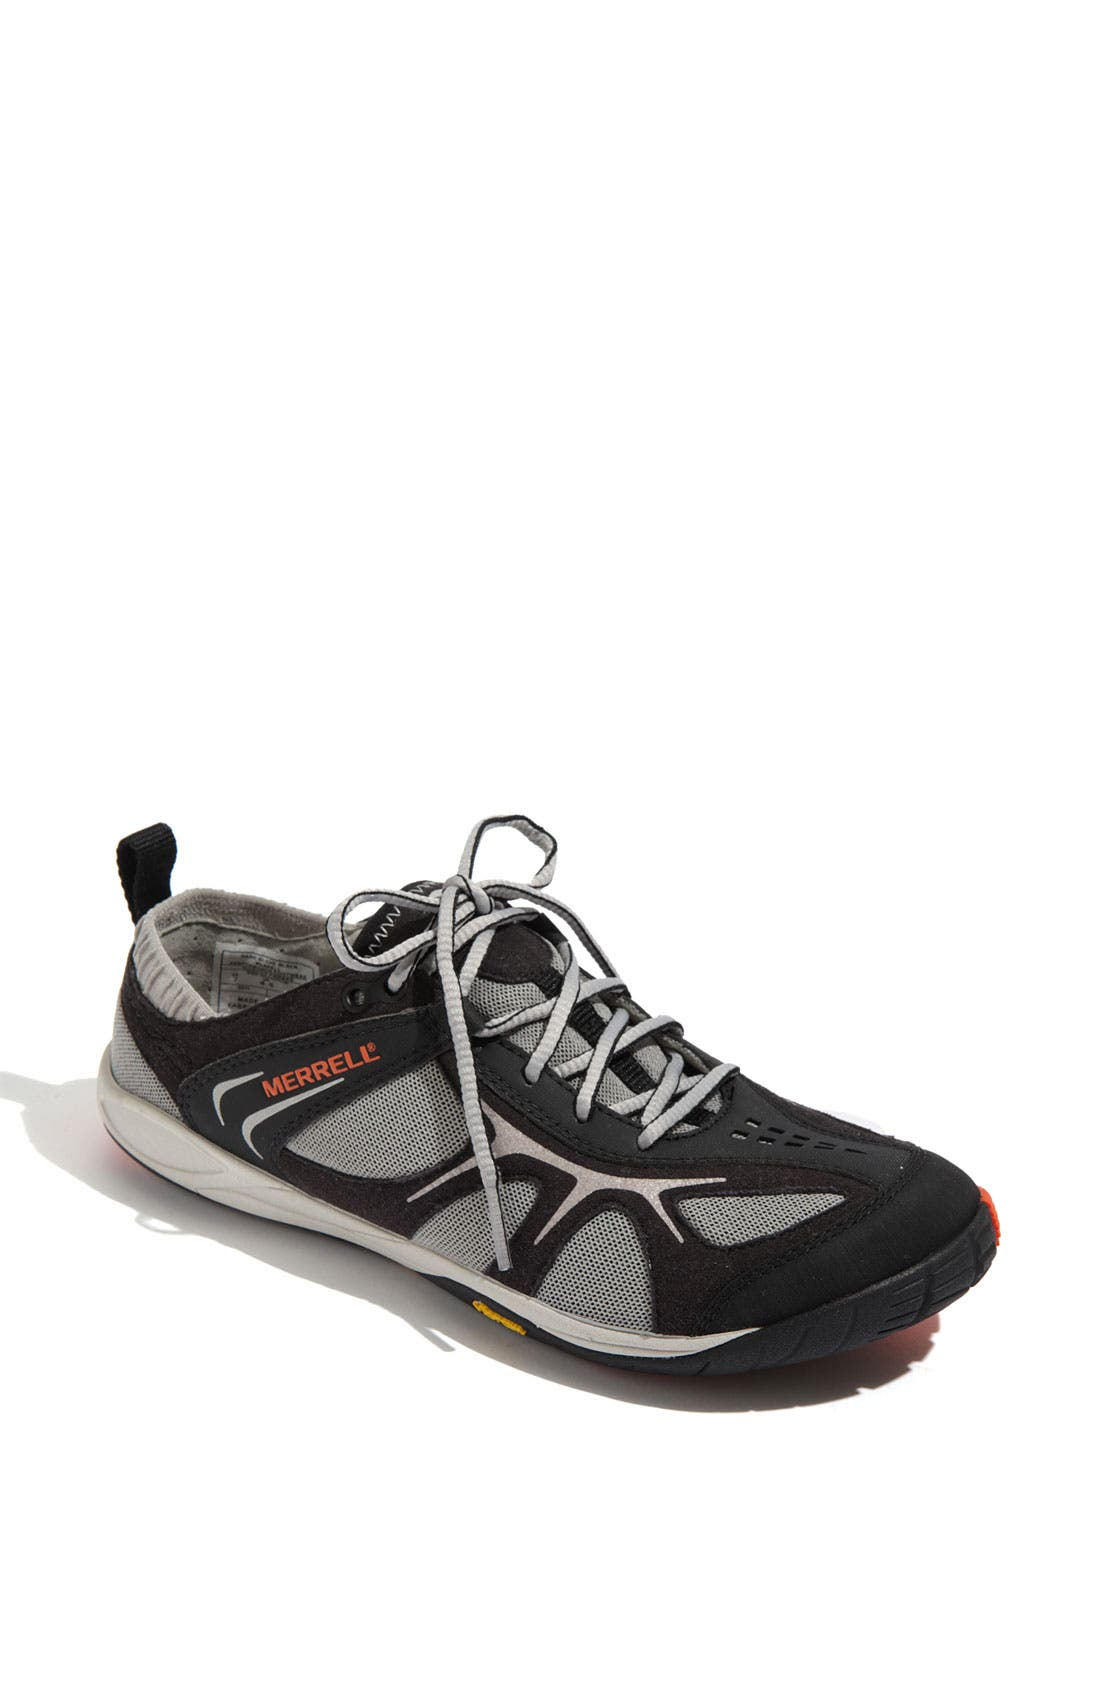 Main Image - Merrell 'Dash Glove' Running Shoe (Women)